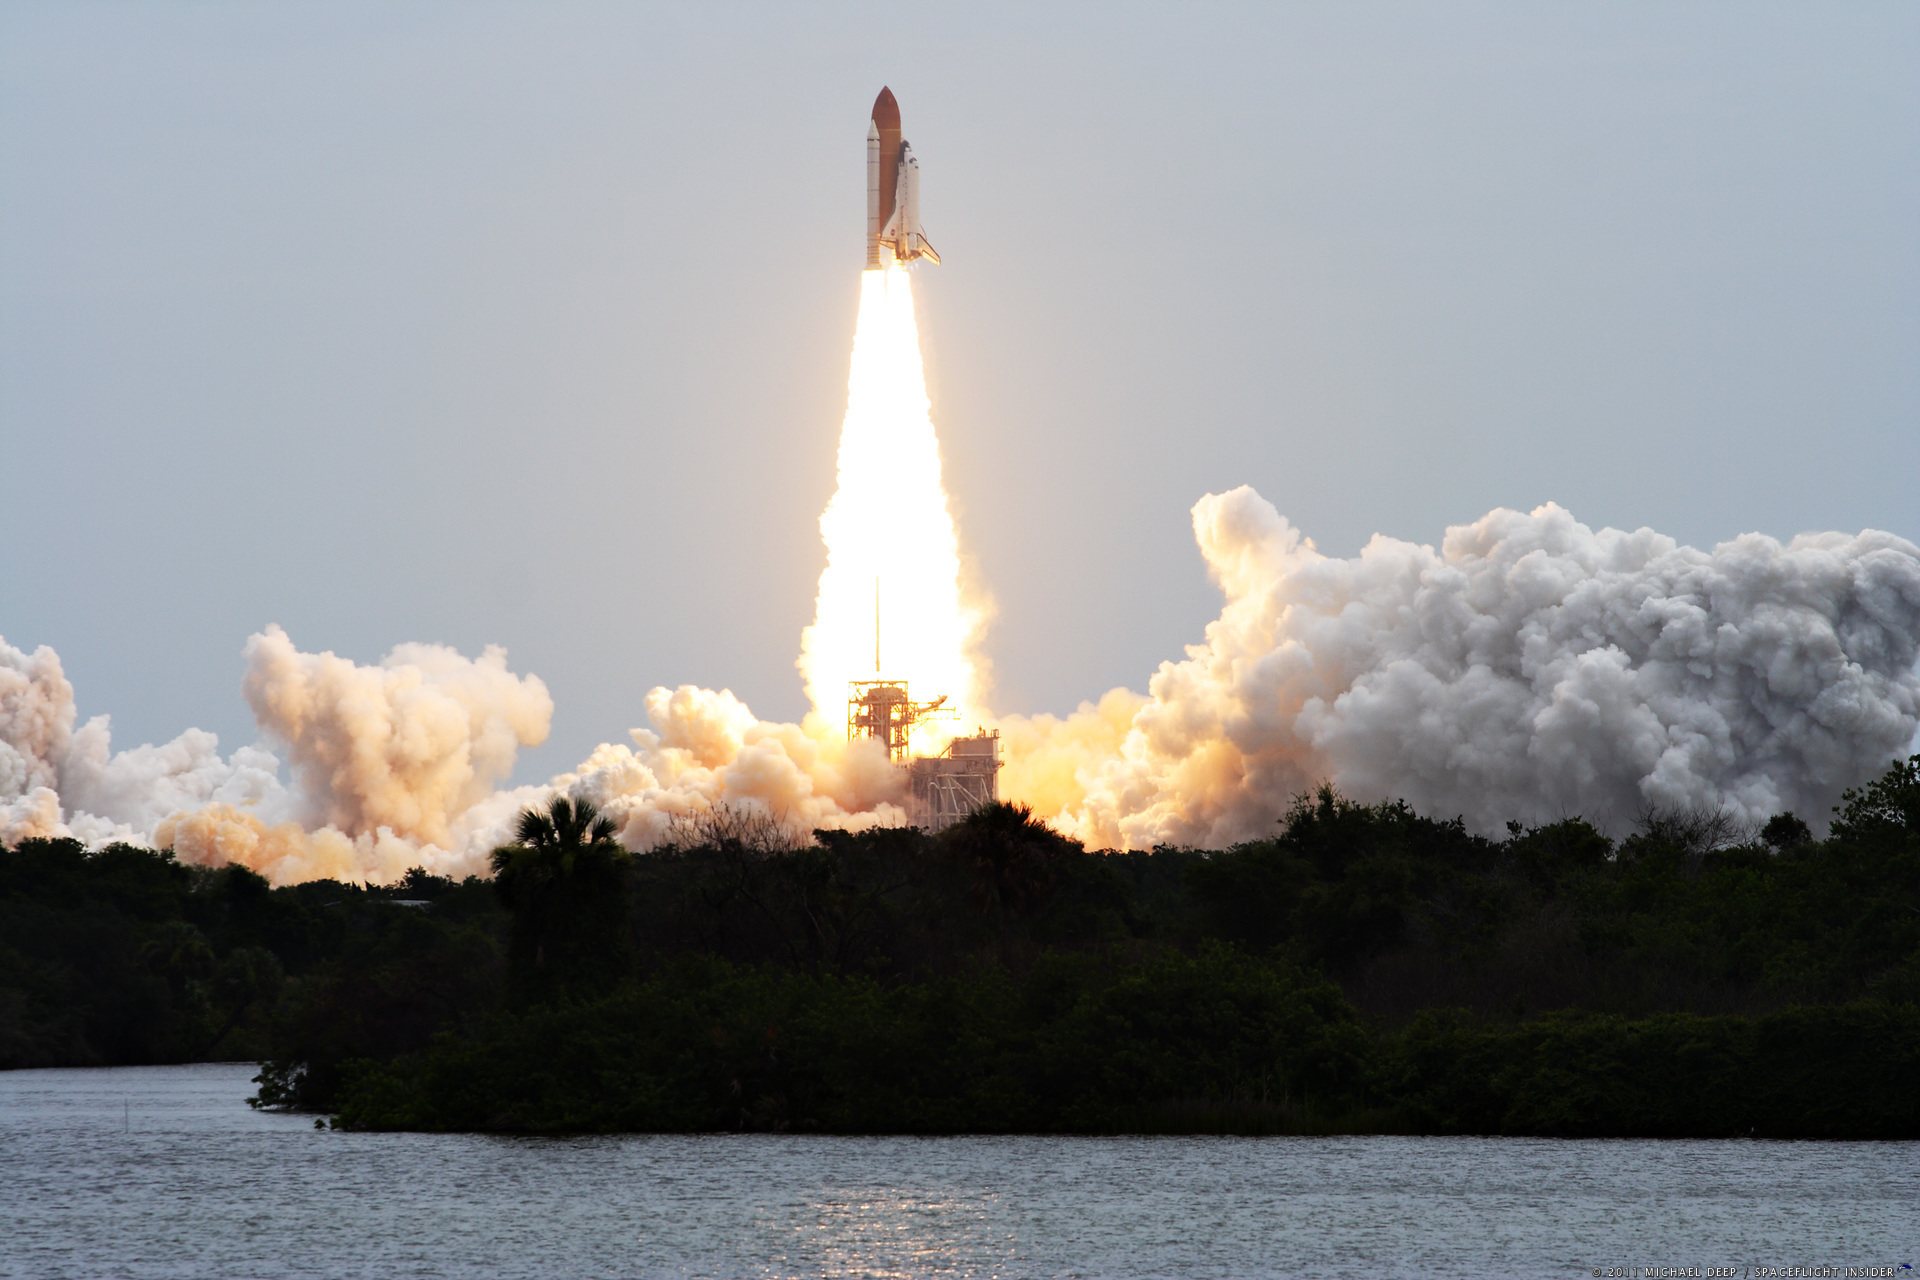 The final space shuttle mission, STS-135 started with a launch on July 8, 2011 - closing out a 30 year era of accomplishment. Photo Credit: Mike Deep / SpaceFlight Insider